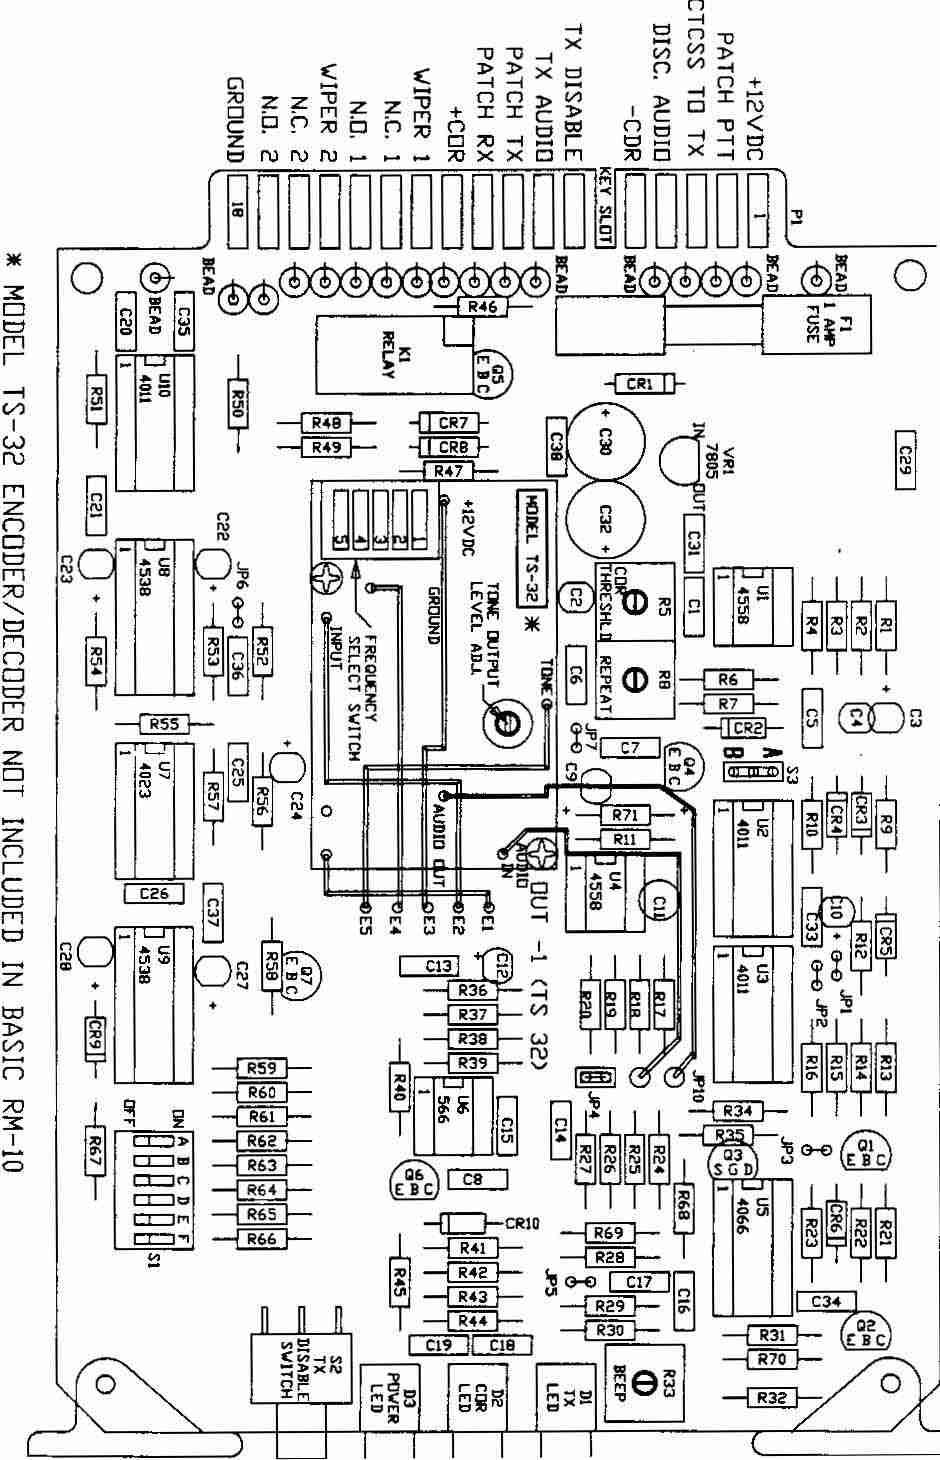 rm1 _2 misc tech info whelen strobe power supply wiring diagram at bakdesigns.co